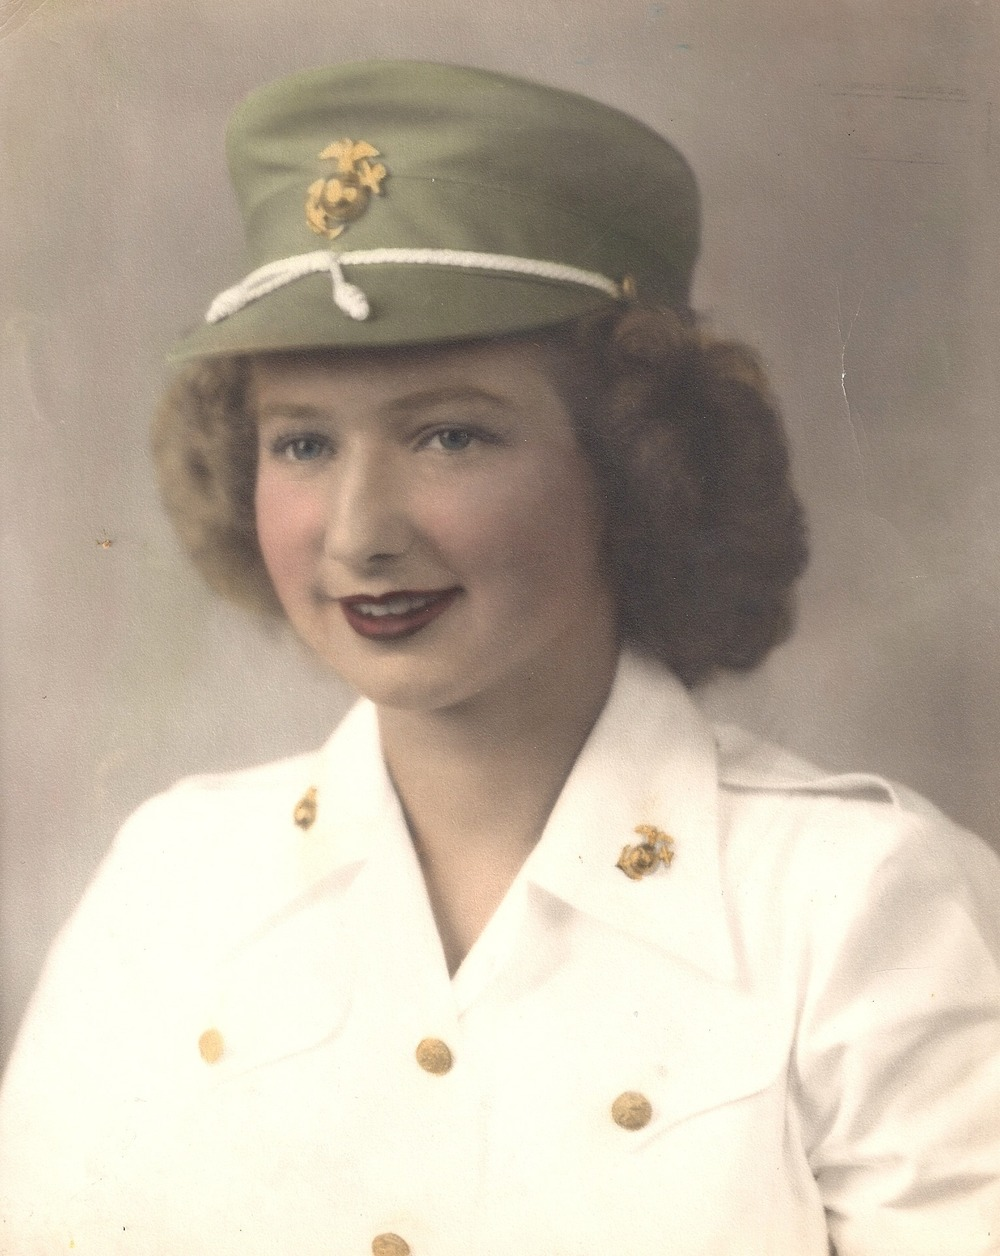 A lovely image of my grandmother while serving this beautiful country.